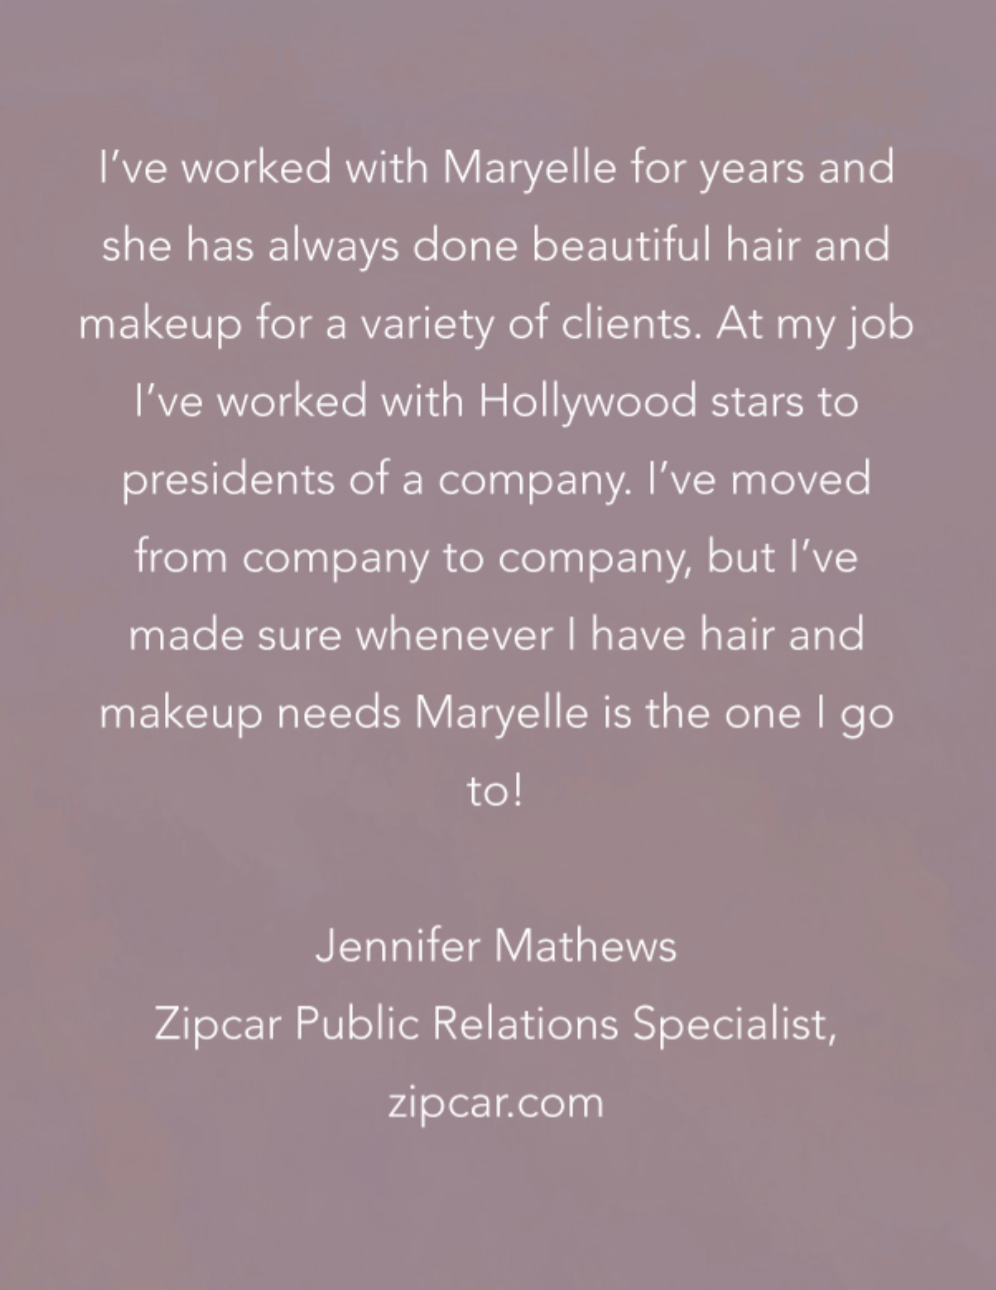 Testimonial from     Jennifer Mathews, Zipcar Public Relations Specialist  zipcar.com